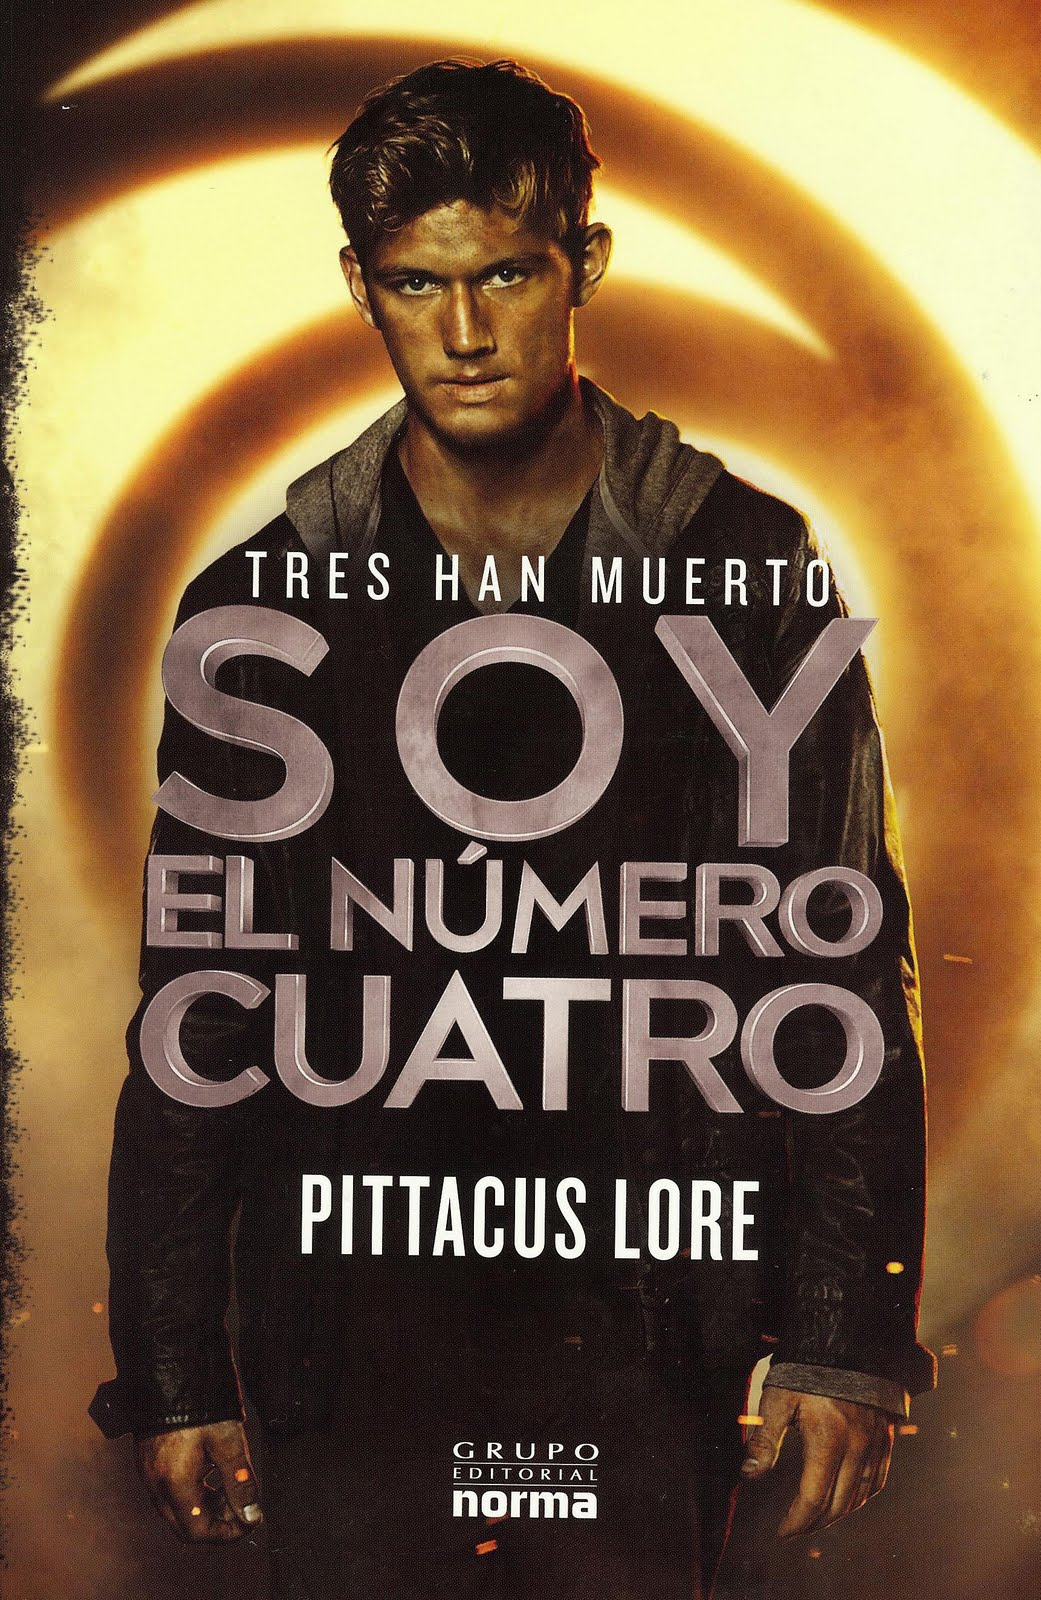 Libro Cuatro Portada Revelada The Fall Of Five Lorien Legacies 4 De